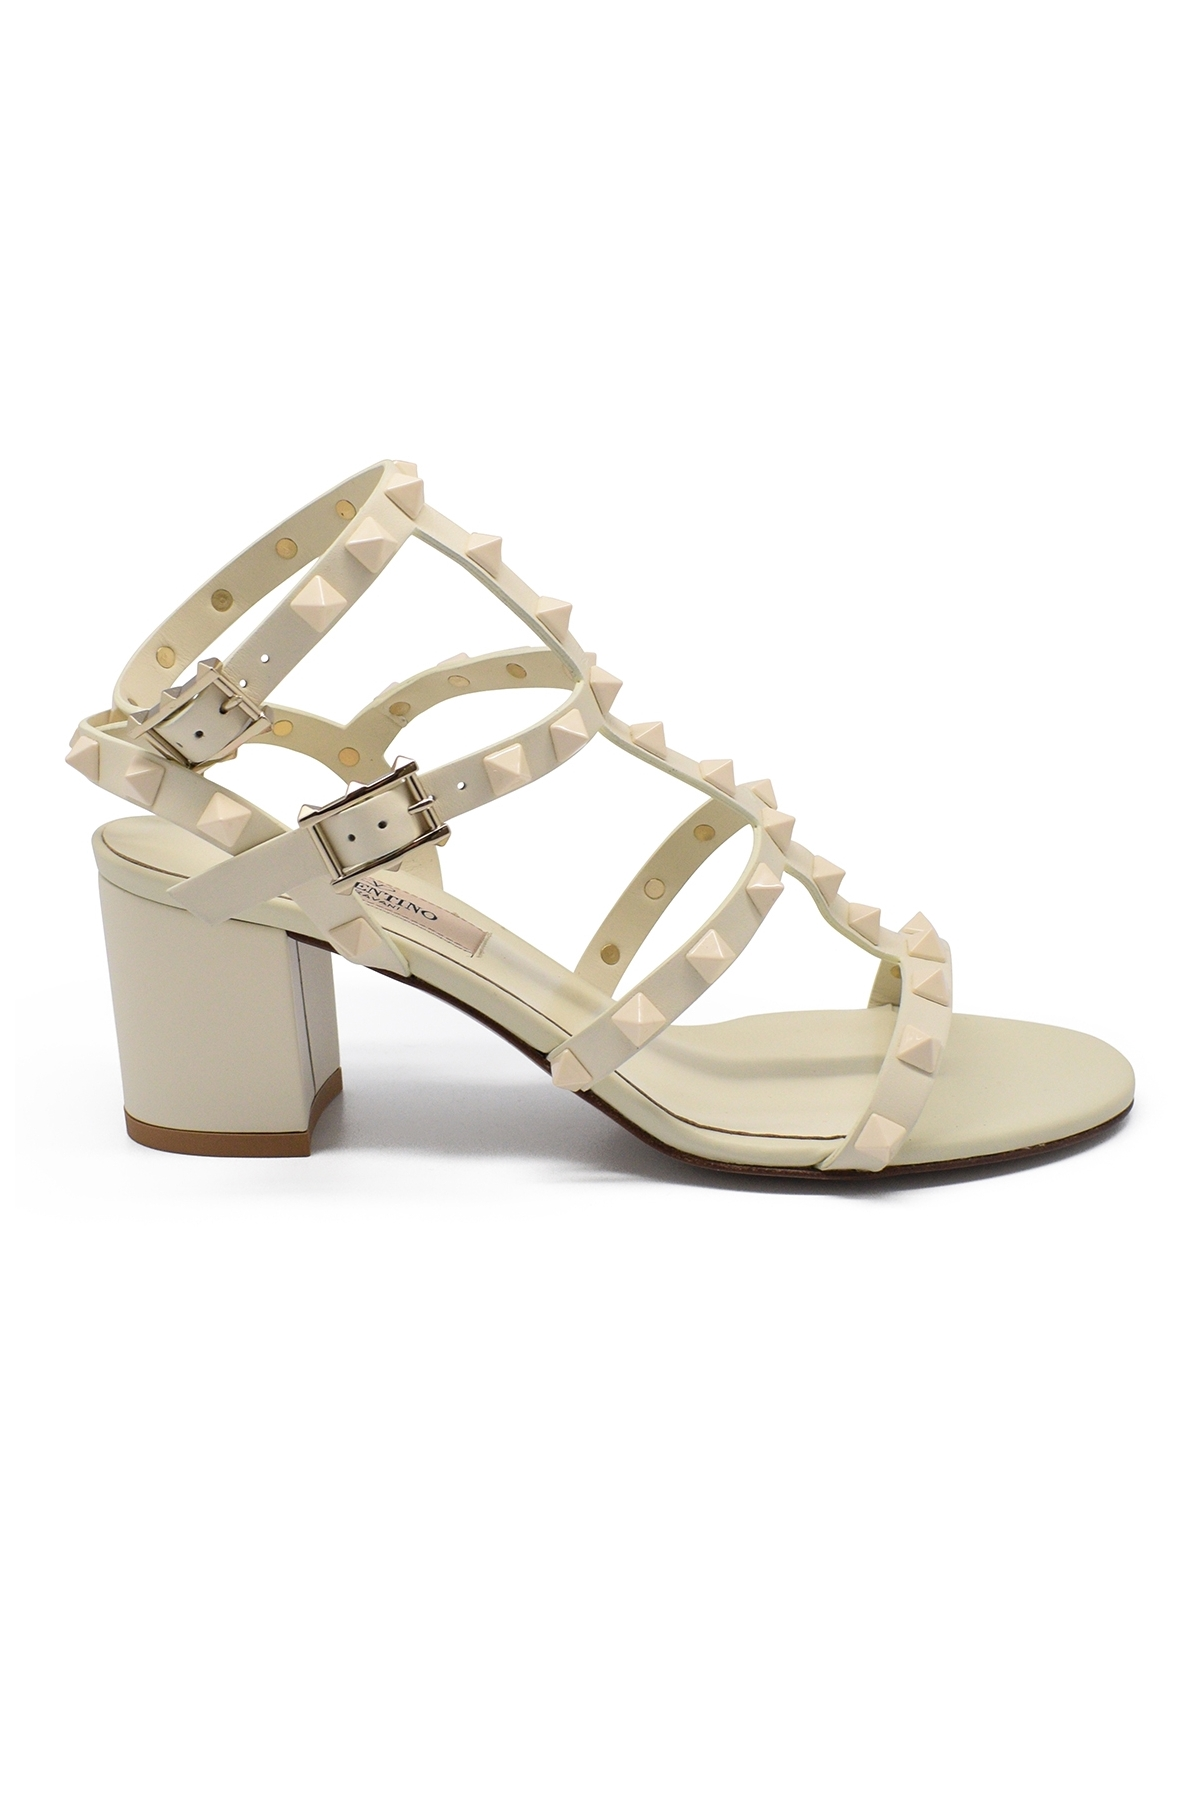 Valentino Rockstud sandals in white leather